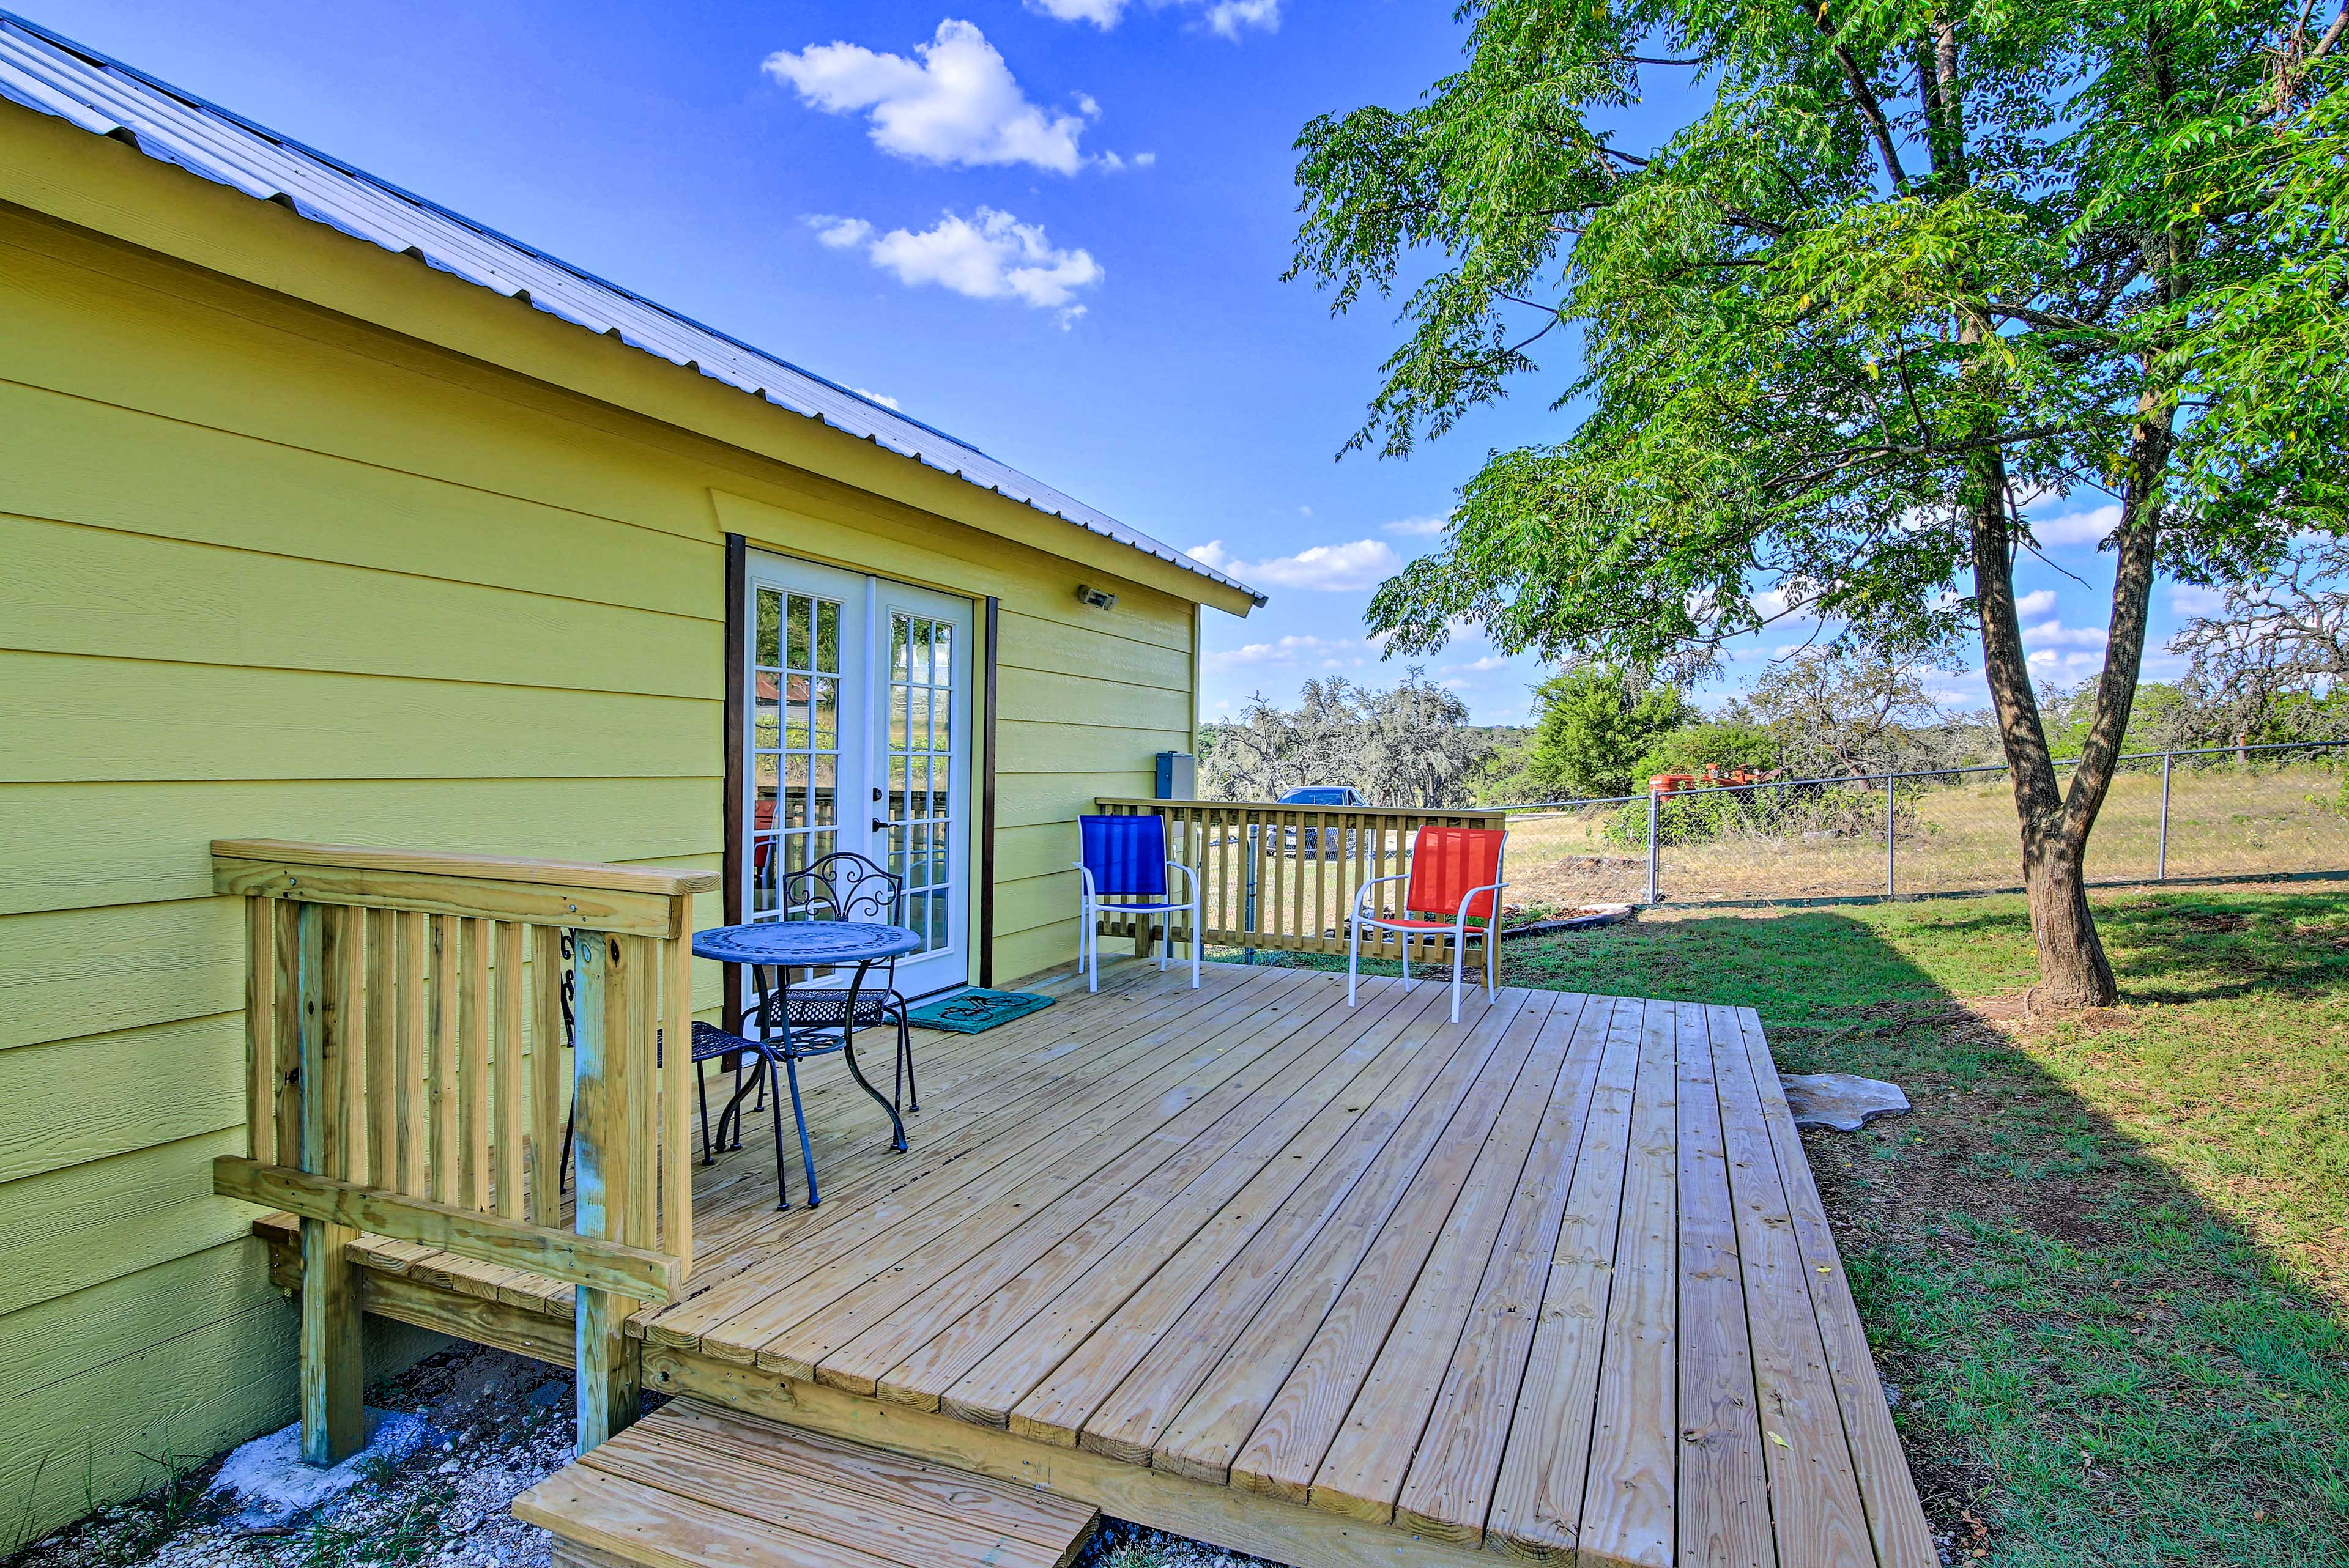 The cabin also has a back deck with a fenced-in yard.